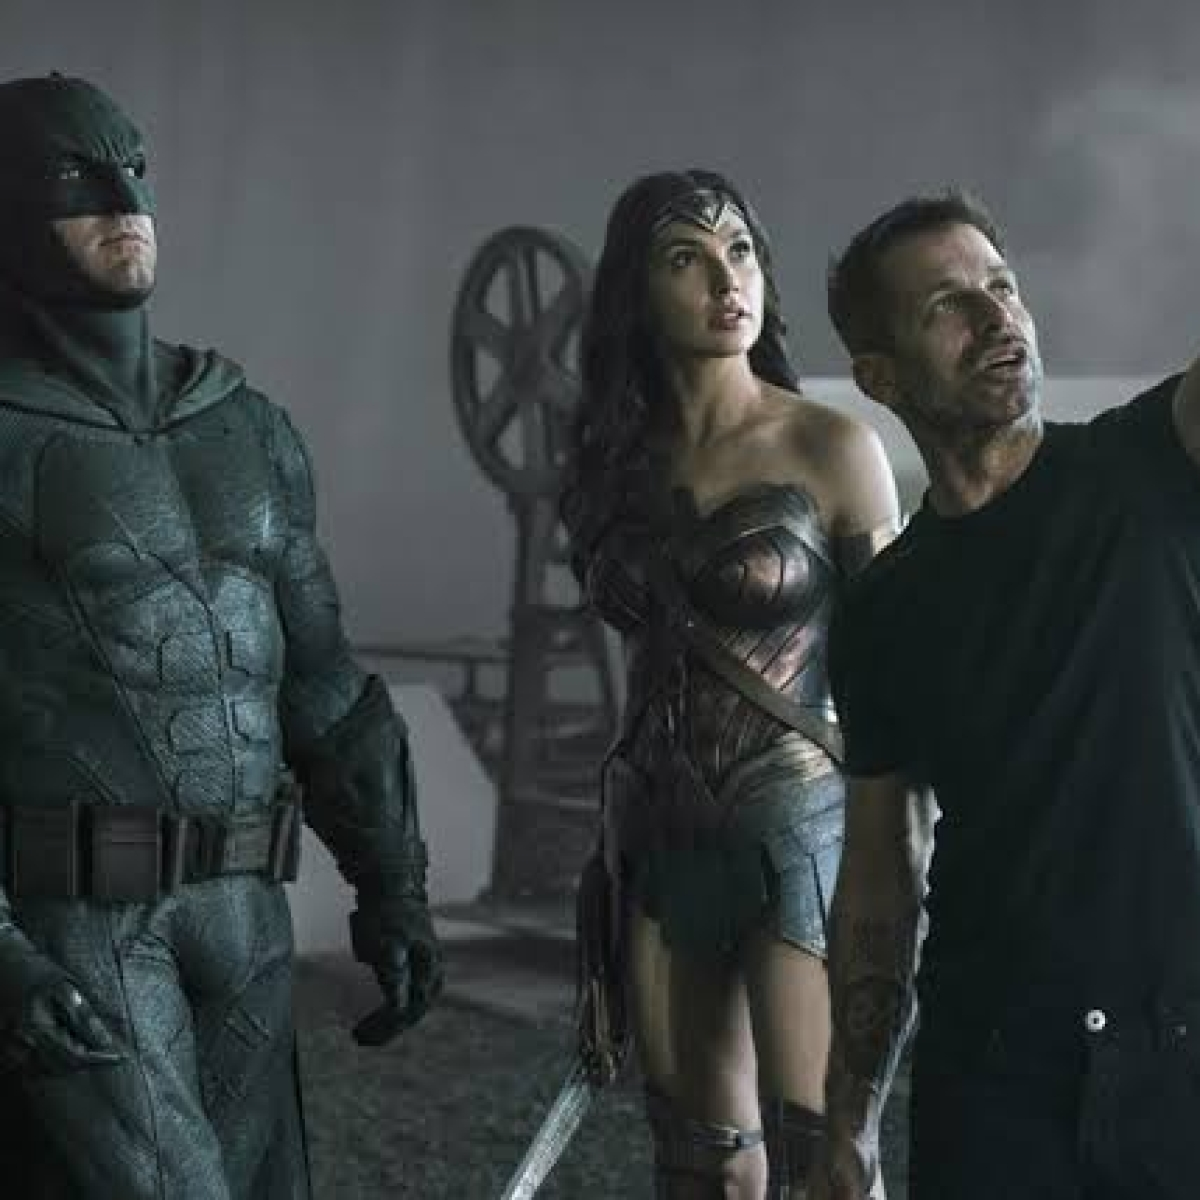 Director Zack Snyder's version of 'Justice League' coming on HBO Max in 2021